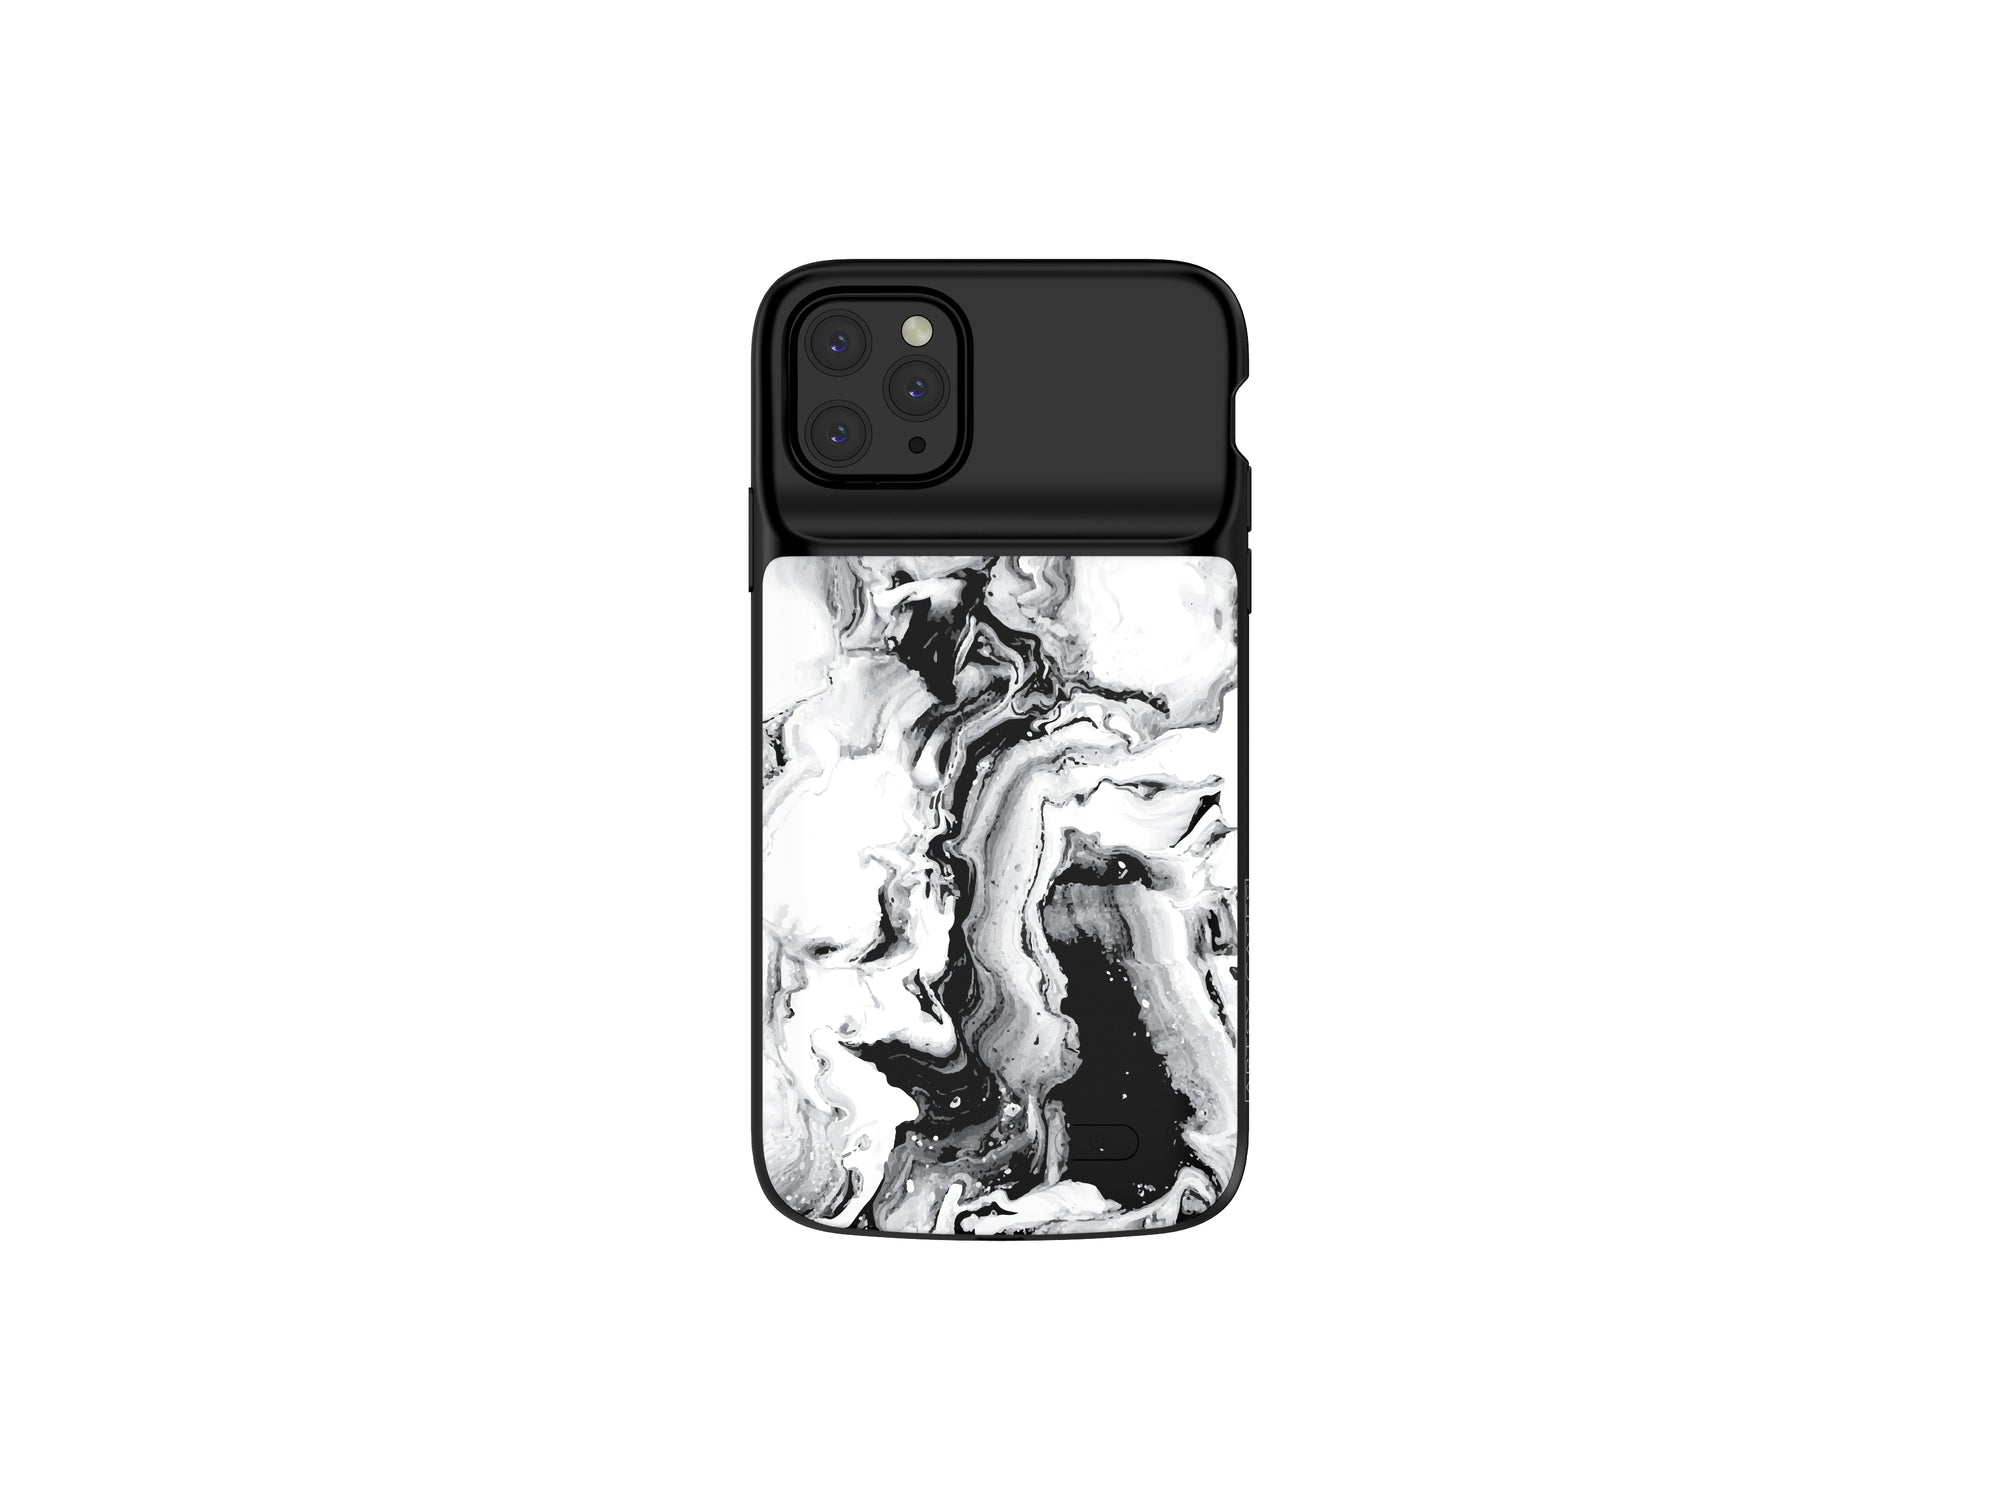 iPhone Pro Max B&W Marble